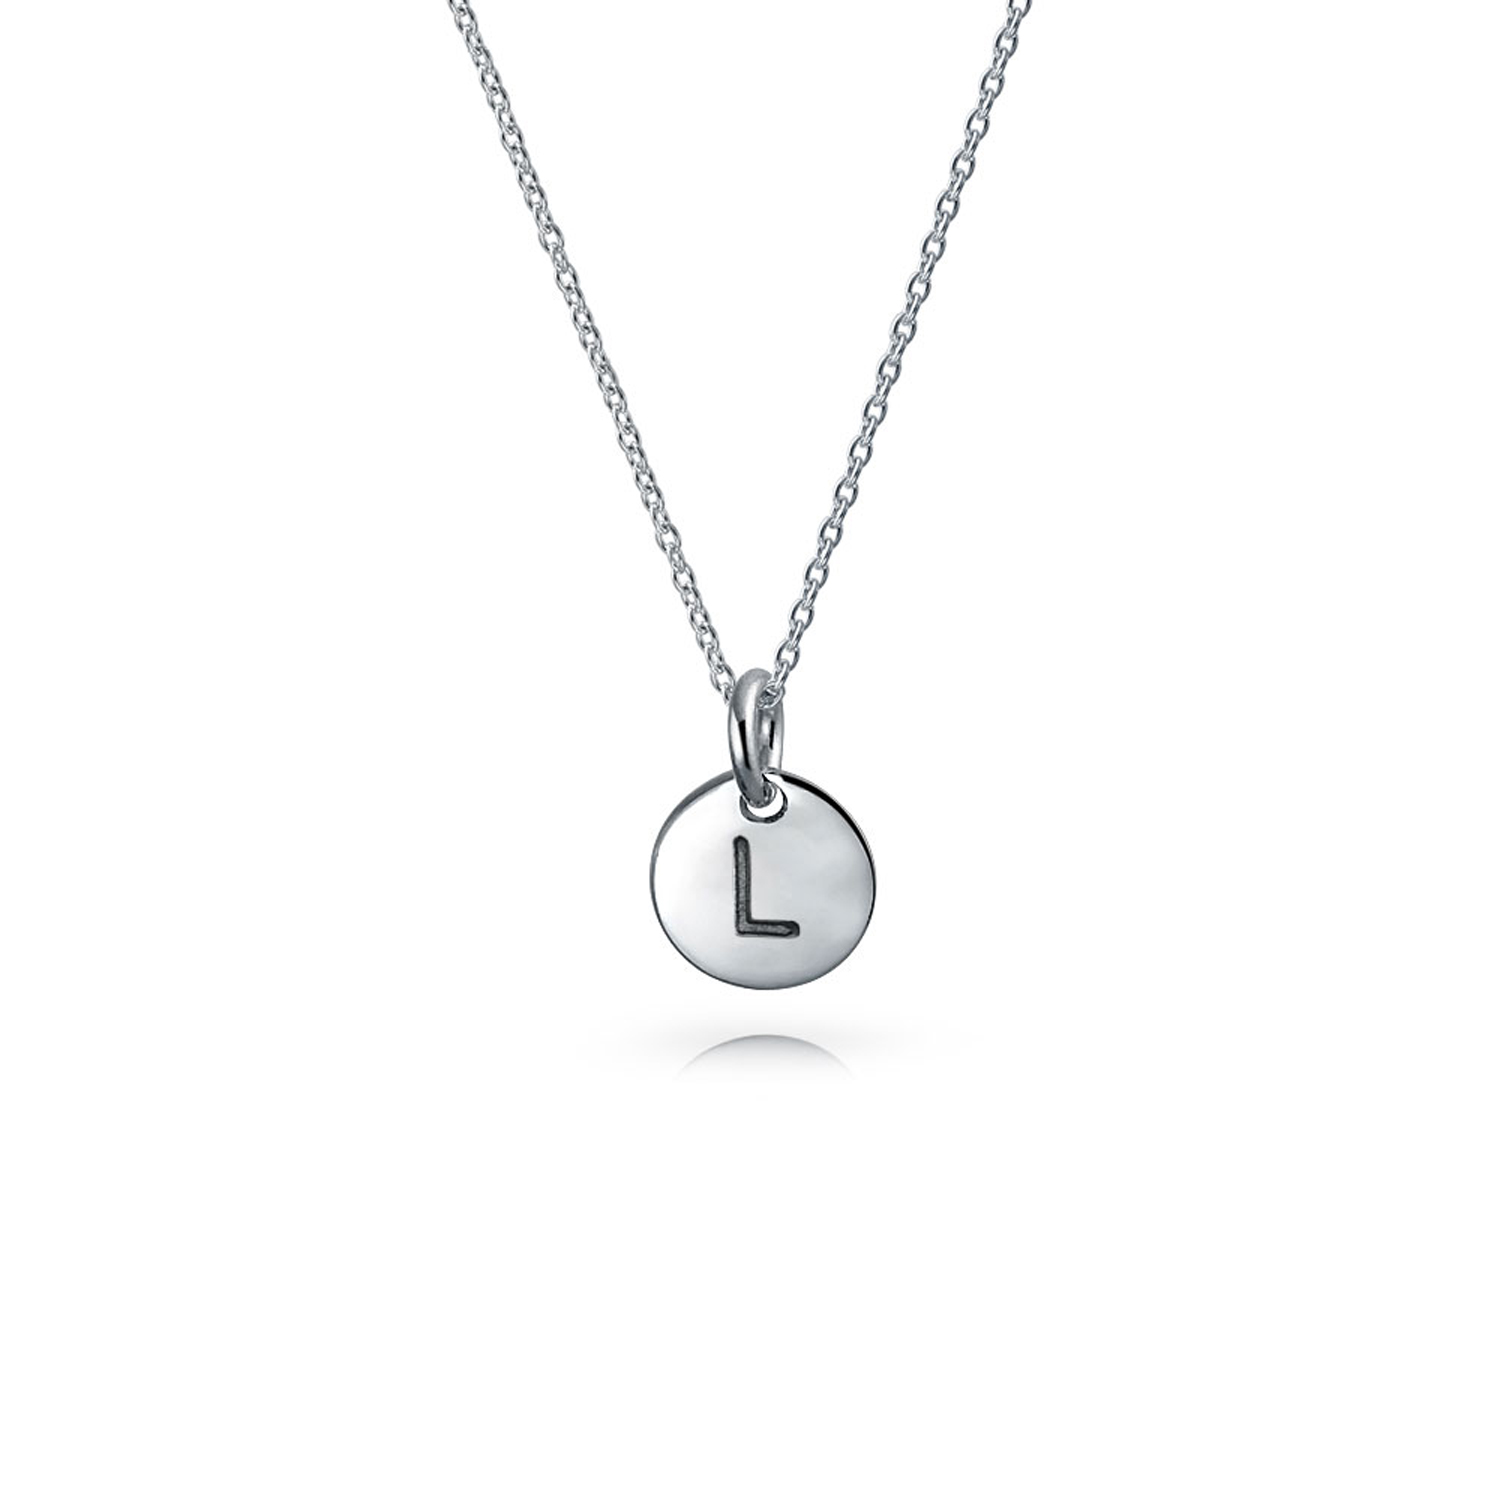 925 Silver Petite Letter L Initial Disc Pendant Necklace 18in